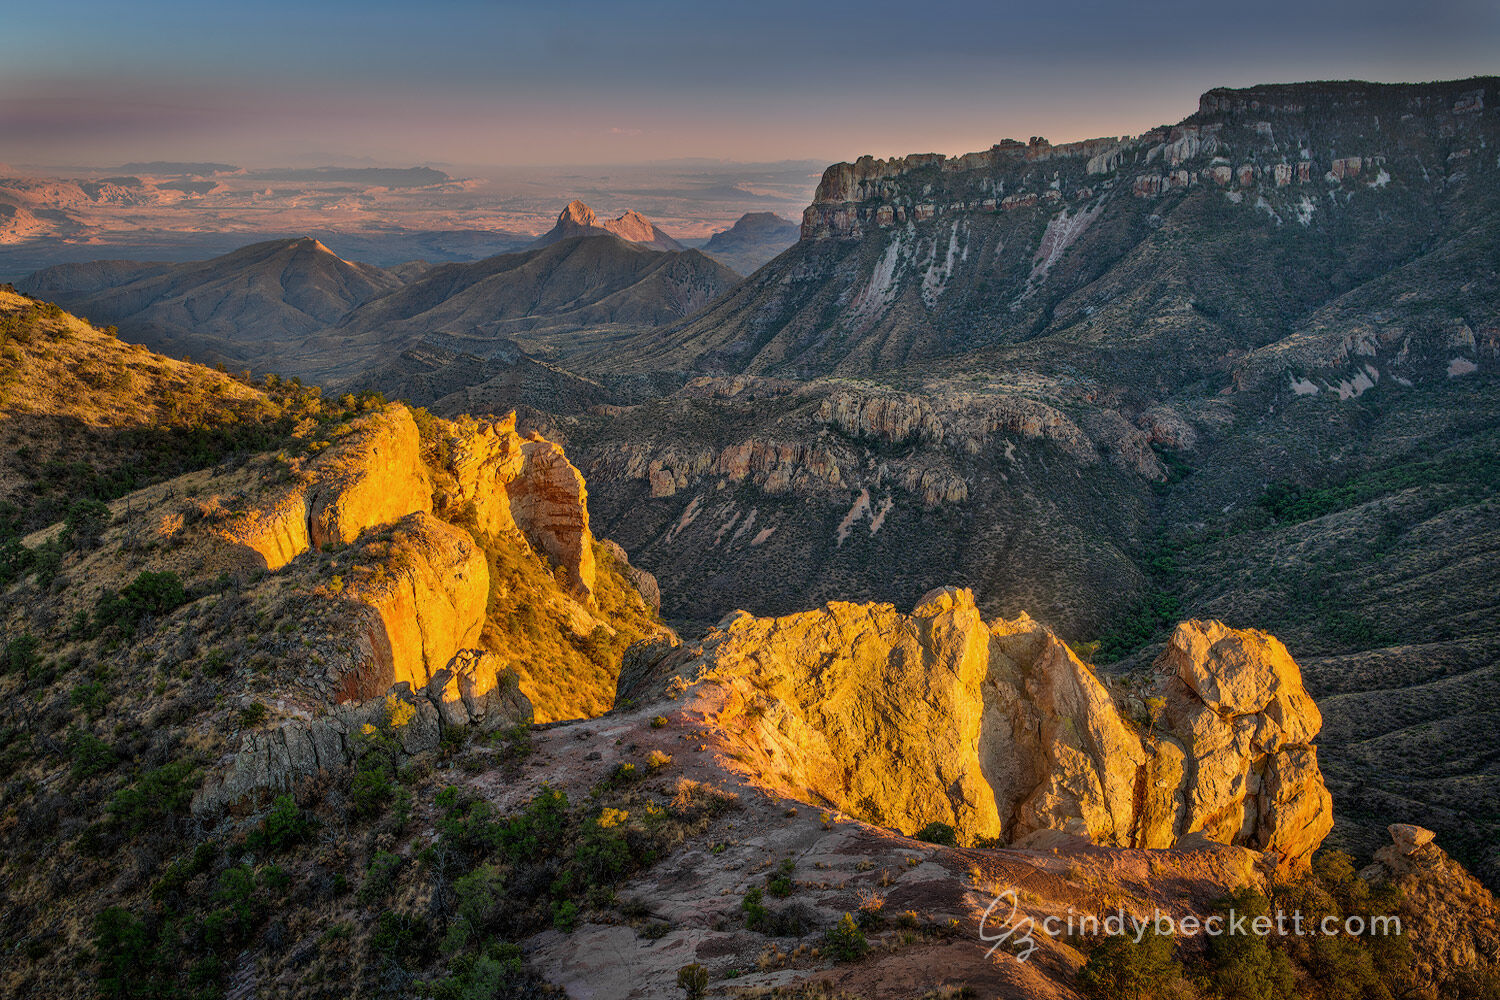 Sunset light captures rock faces of Juniper Canyon at the top of Lost Mine trail. Views across the canyon lead down into Pine Canyon and Sierra del Carmen